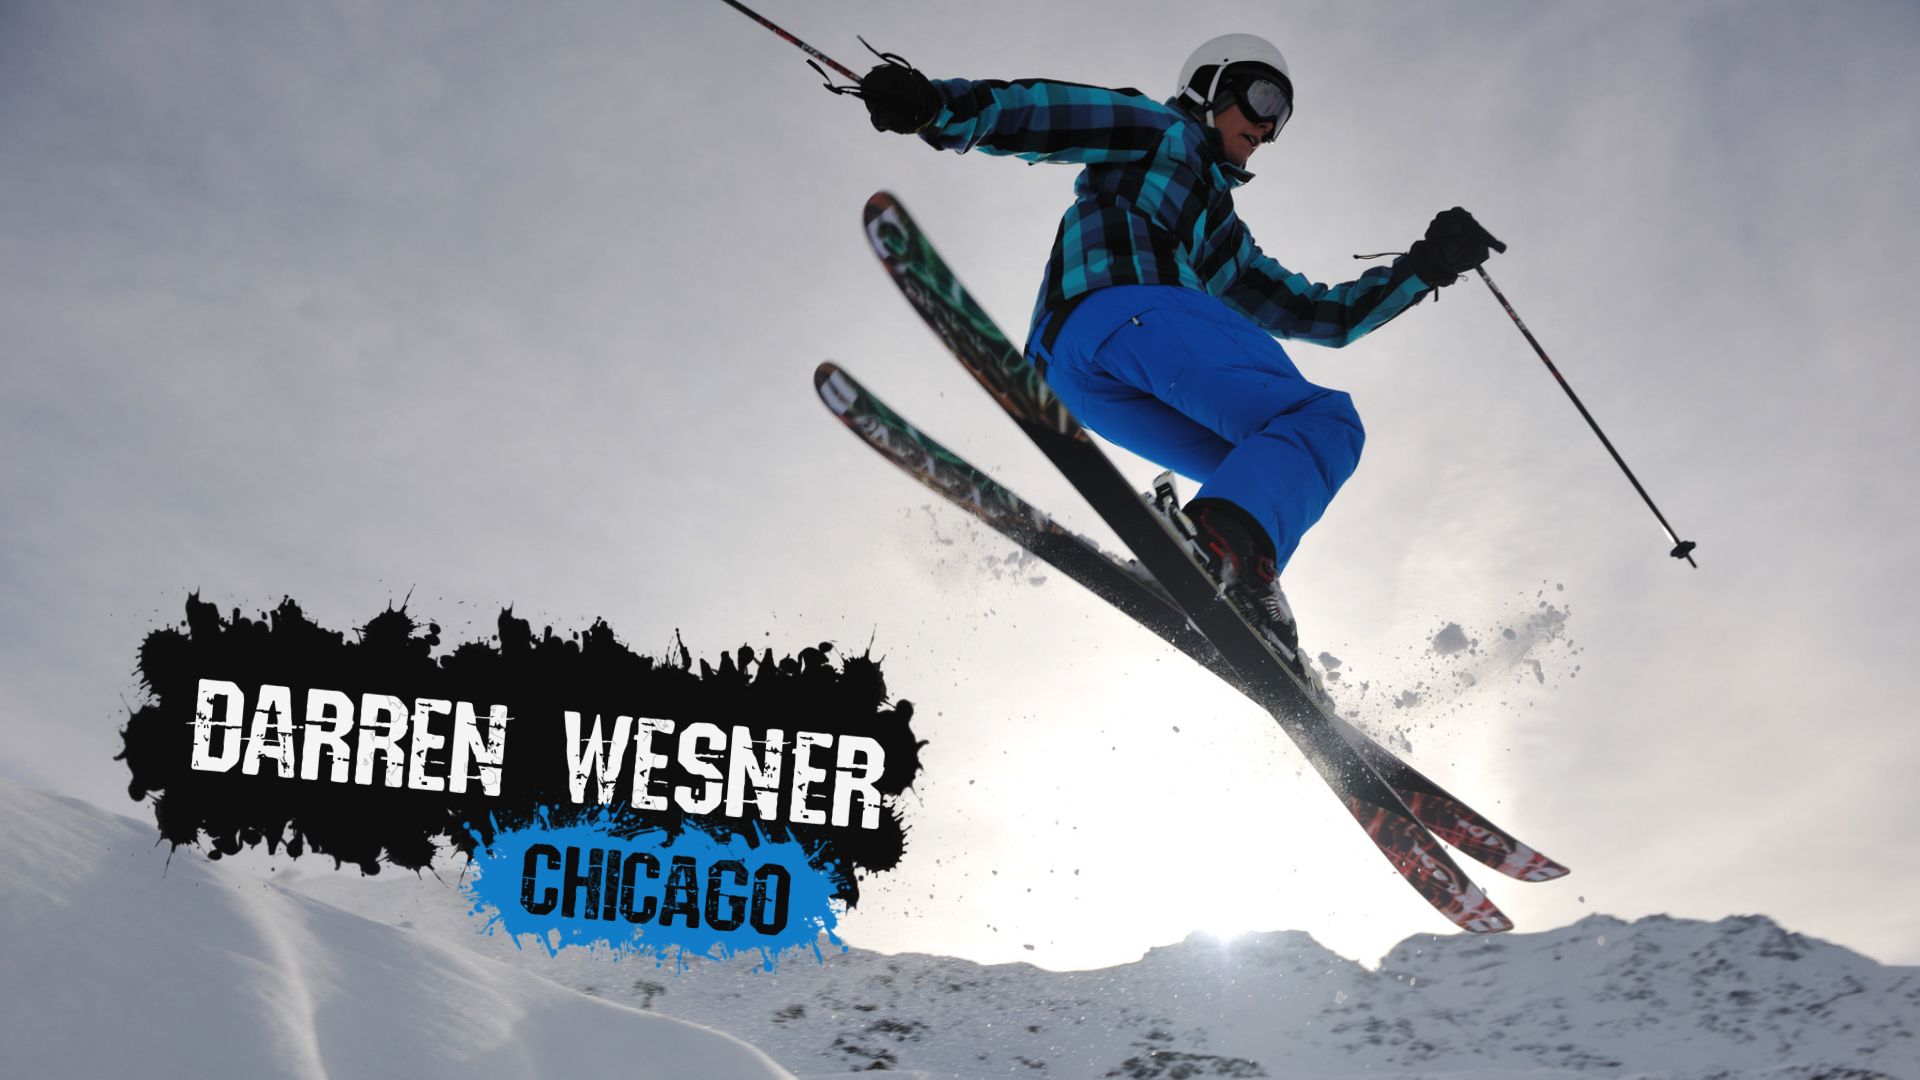 Extreme Sports Lower Thirds - After Effects Templates